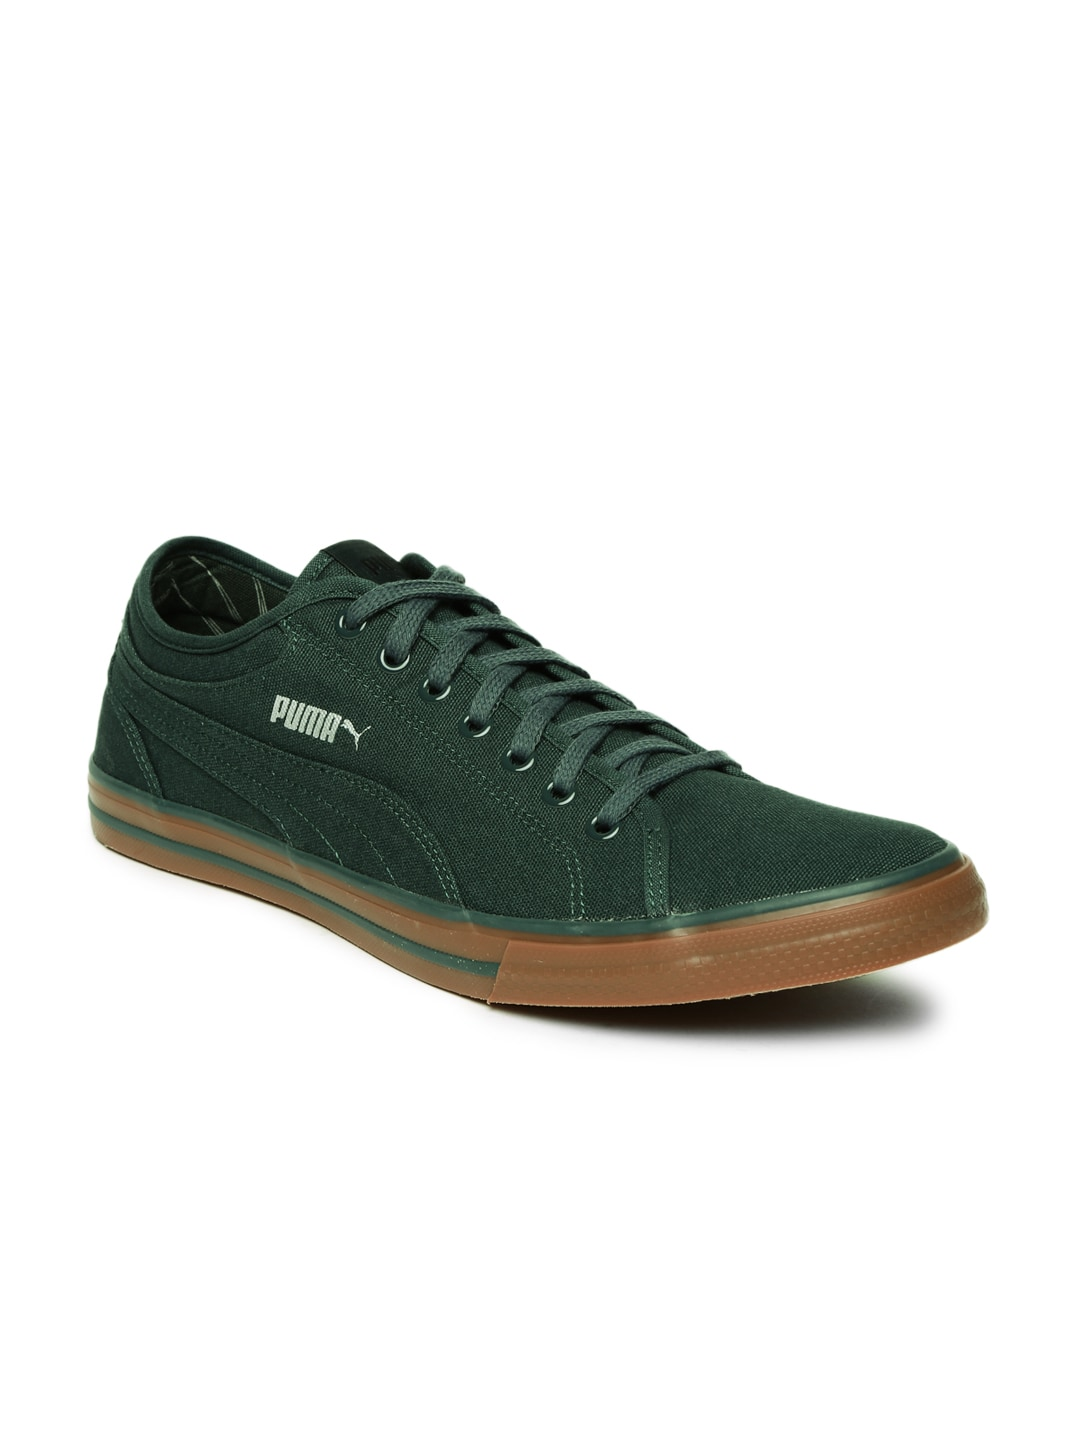 Puma Green Sneakers Casual Shoes - Buy Puma Green Sneakers Casual Shoes  online in India 94c3685f5